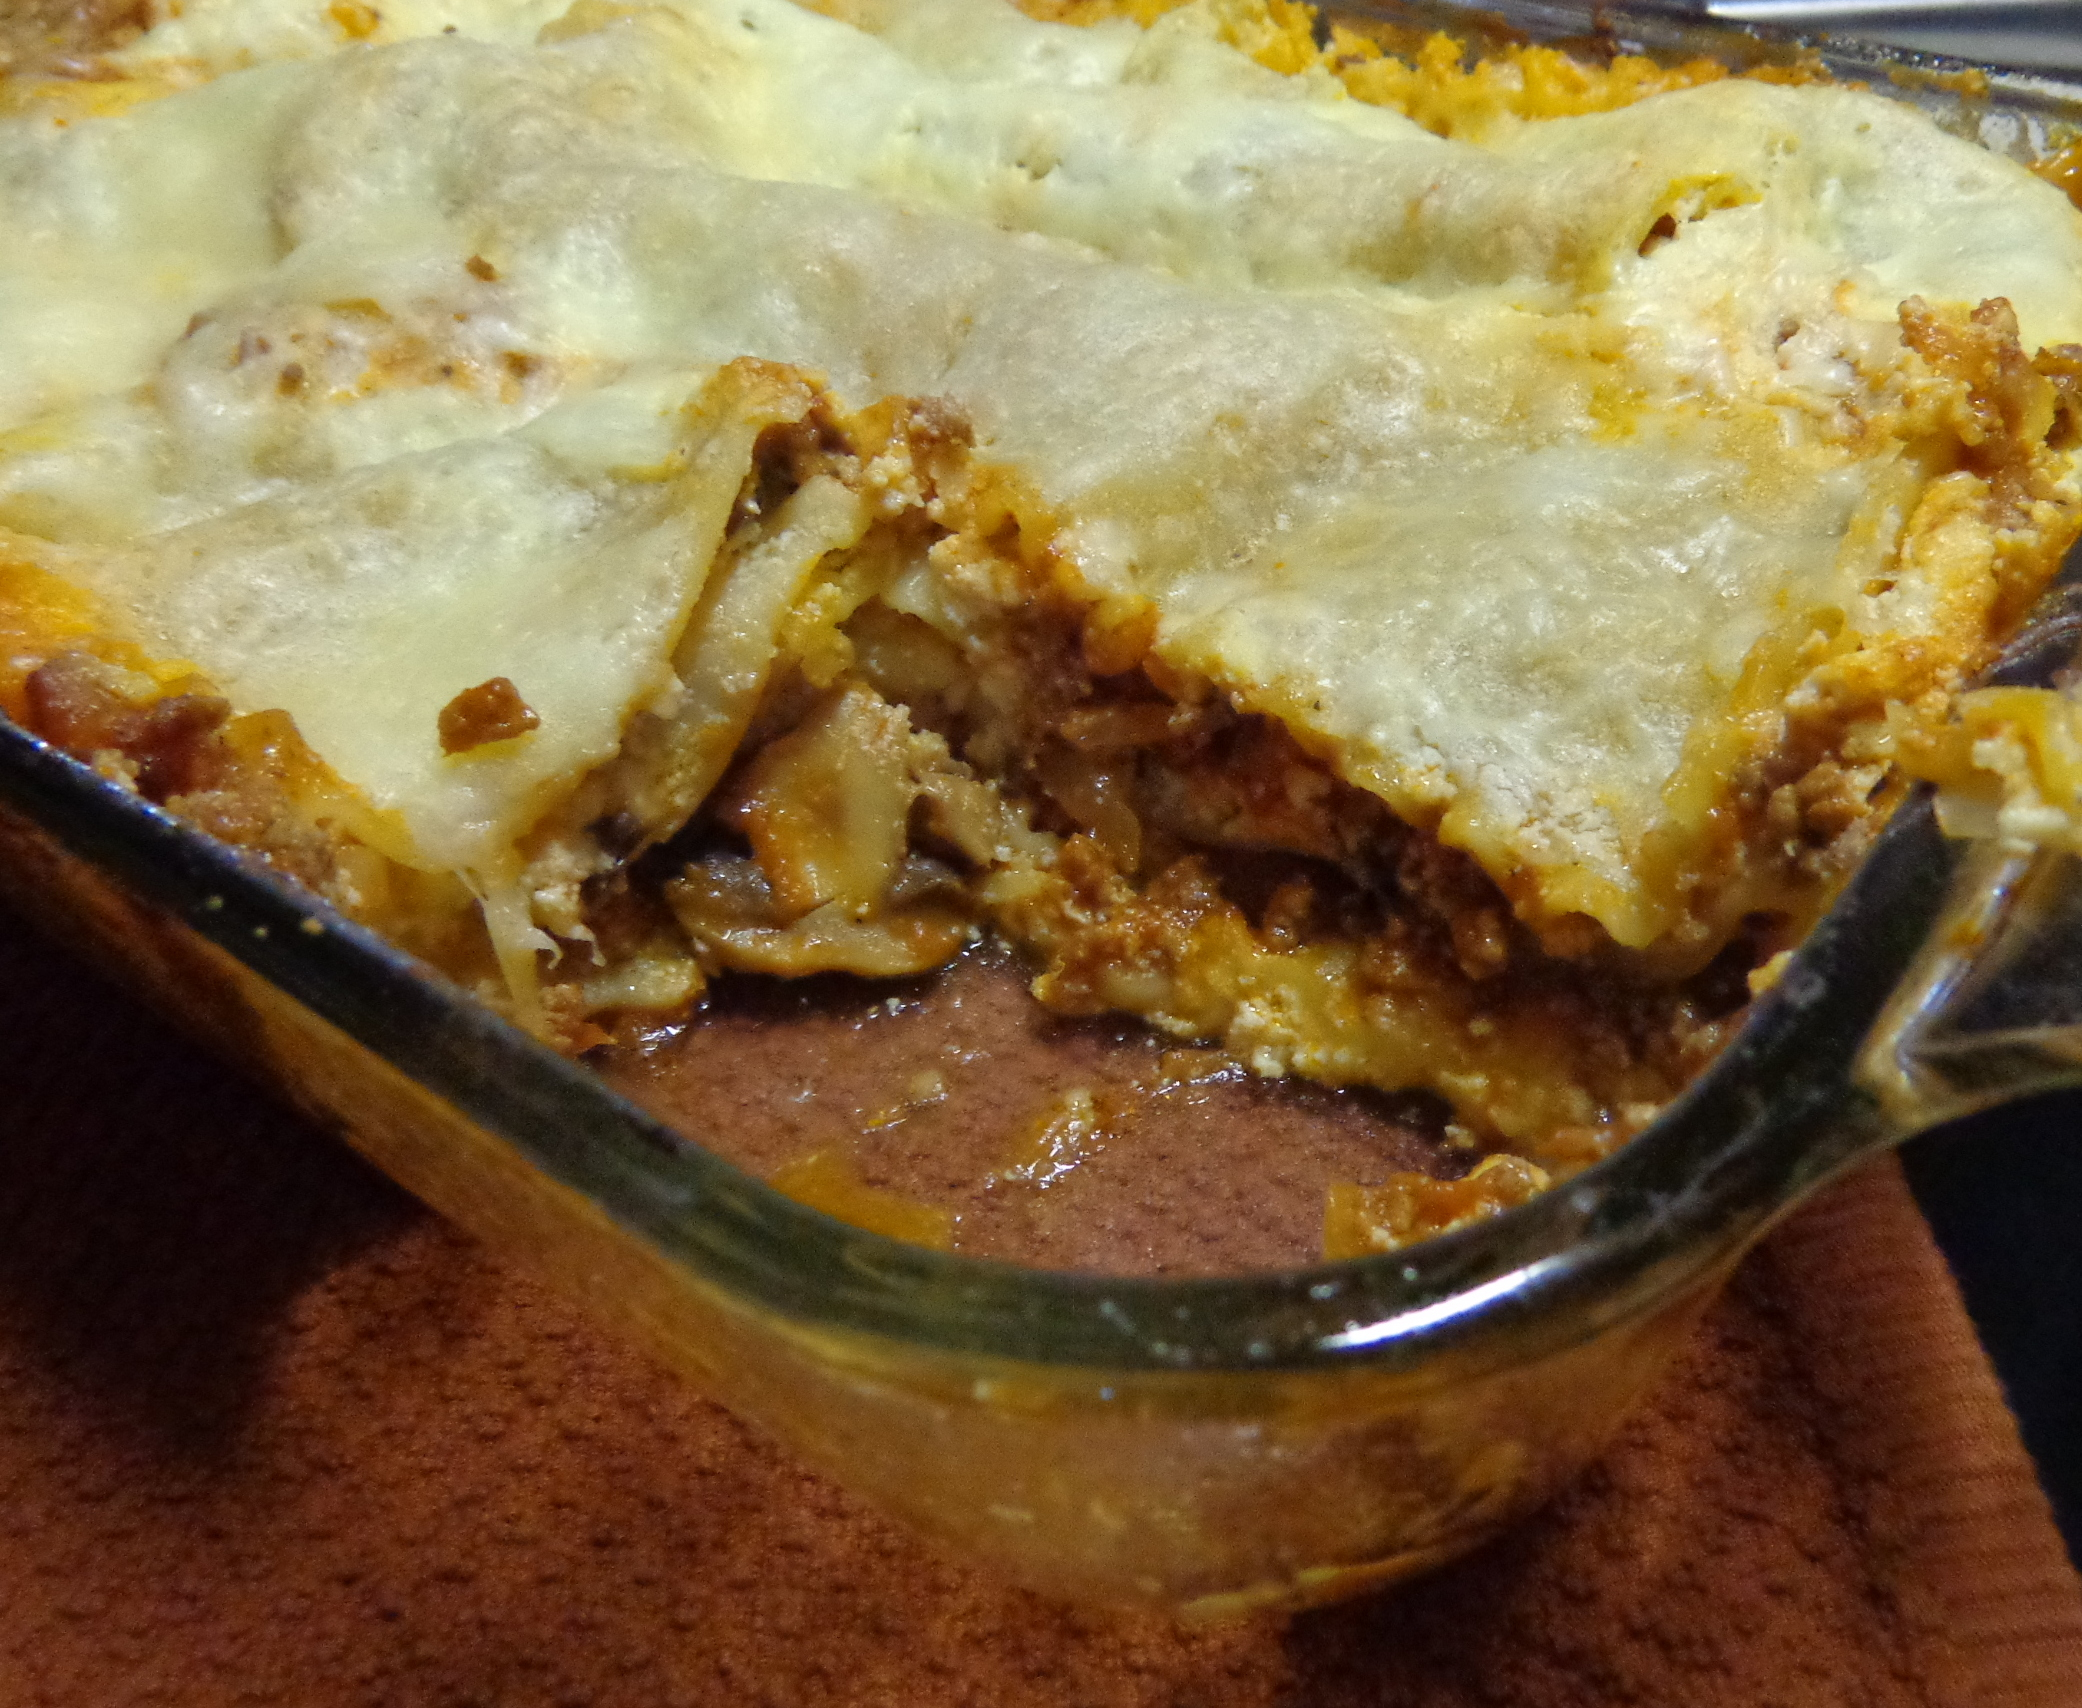 a review of a recipe of baked lasagna sheets Dry lasagna sheets work the best for this recipe, i have tried it with fresh, and it didn't turn out as well, so i always use the dry ones, i think it helps absorb the excess liquid and makes it turn out so good.